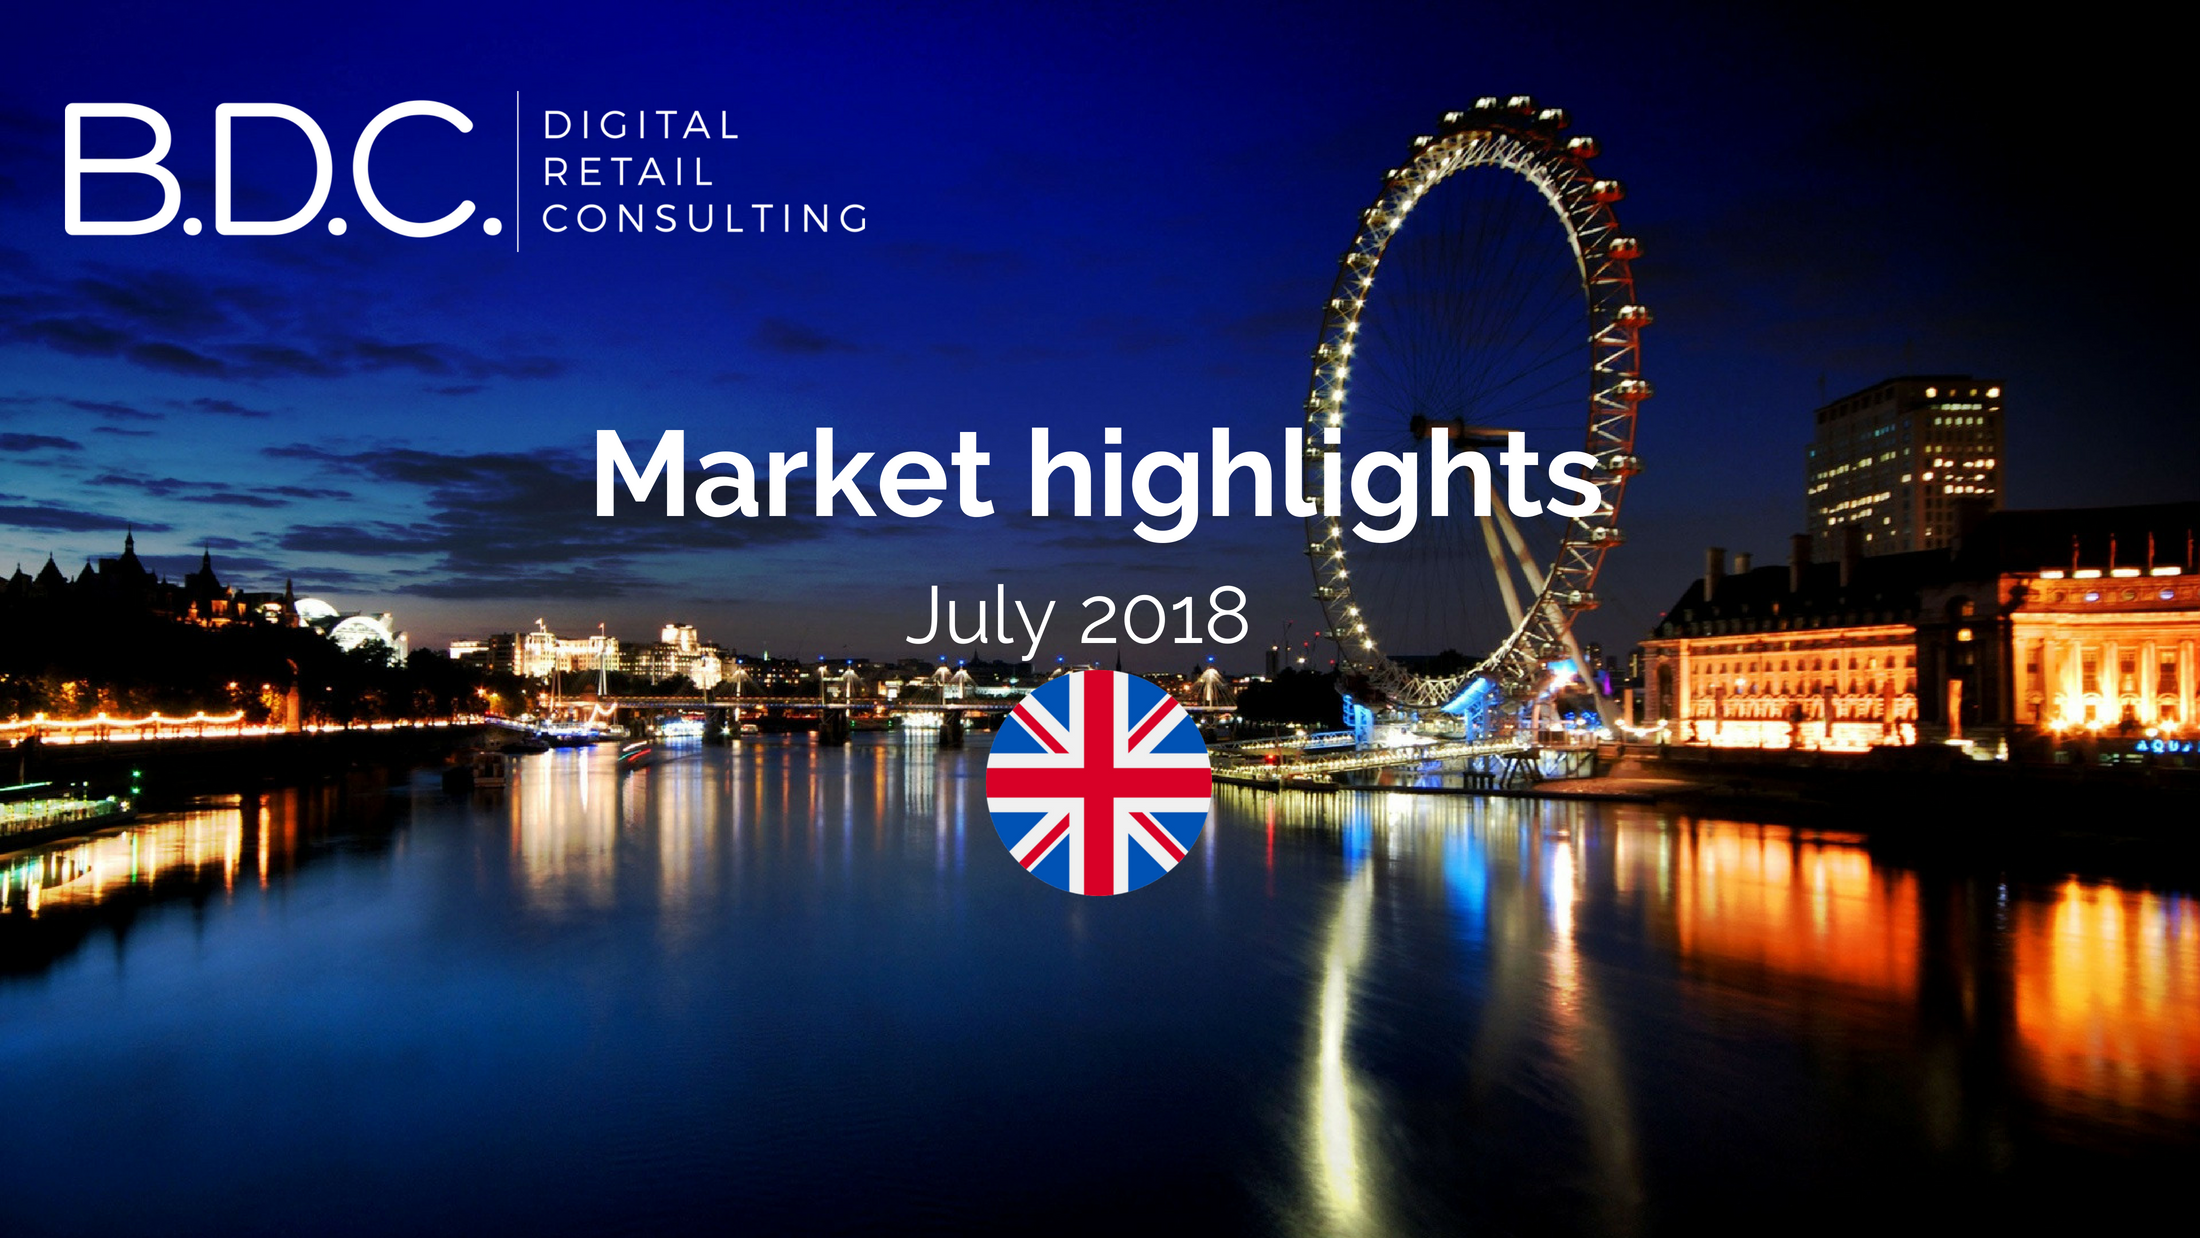 Trends News 2 1 - UK MARKET HIGHLIGHTS – JULY 2018